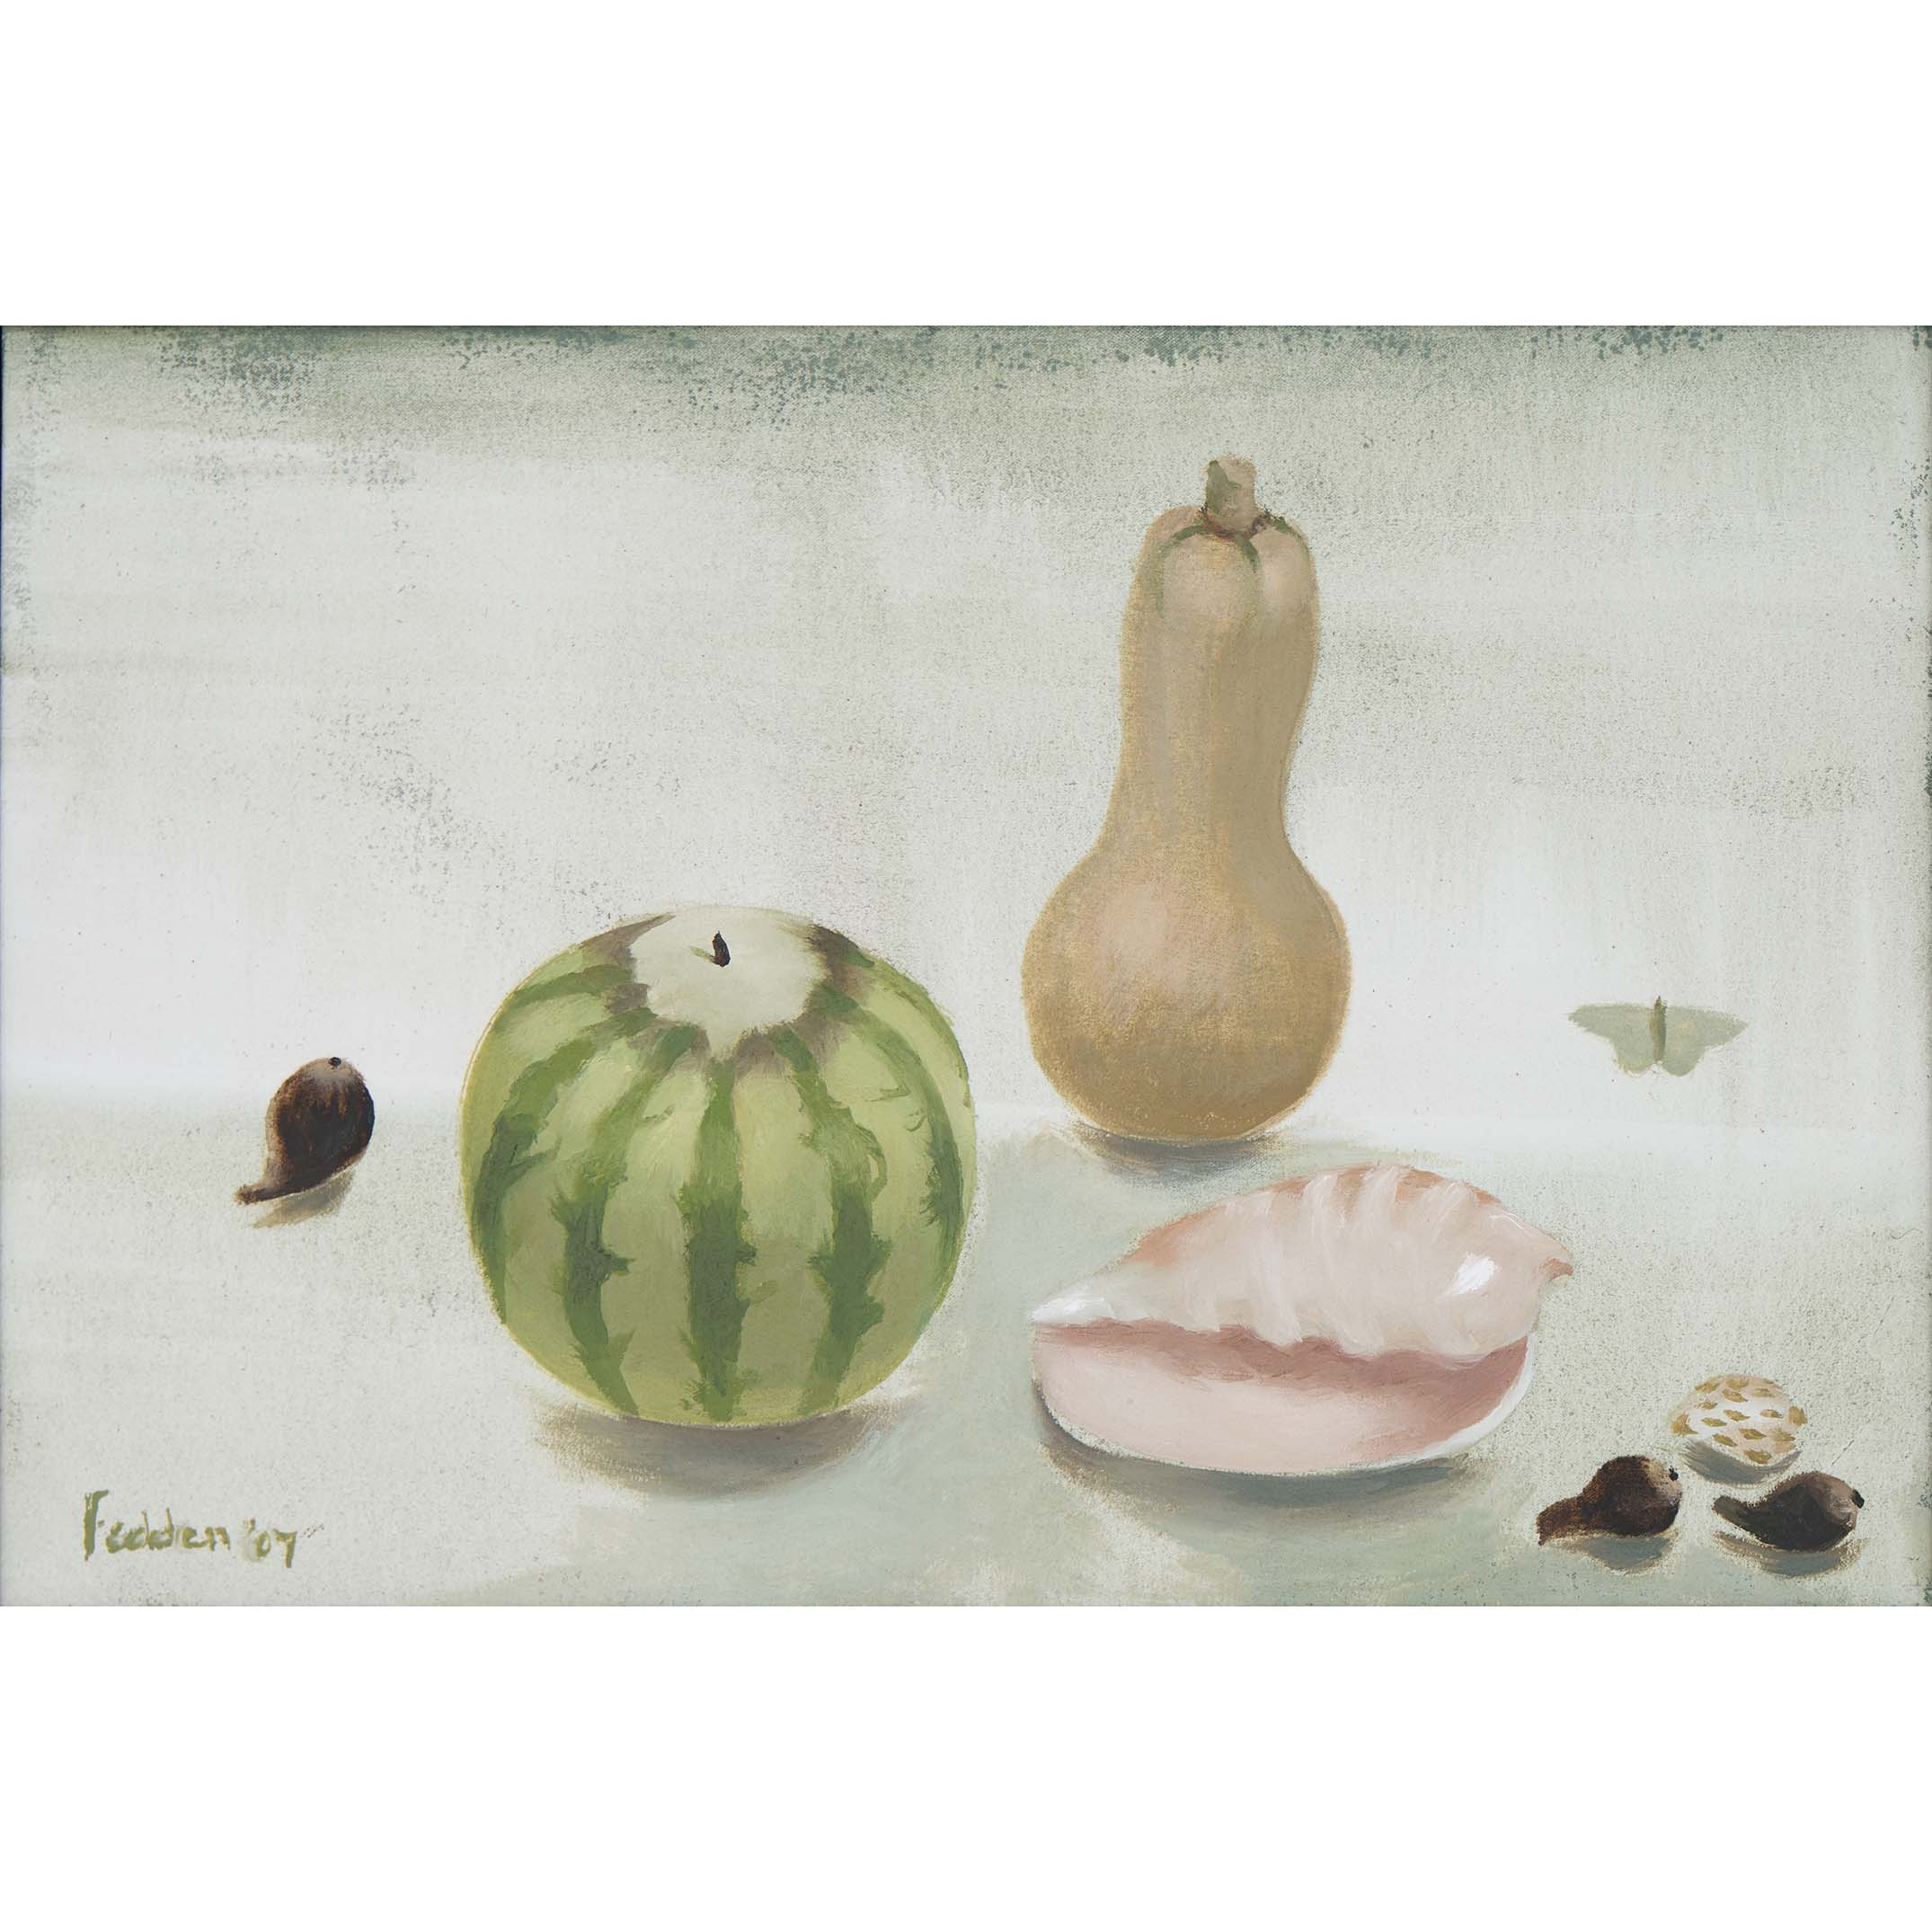 MARY FEDDEN. THE PINK SHELL. 2007. SOLD